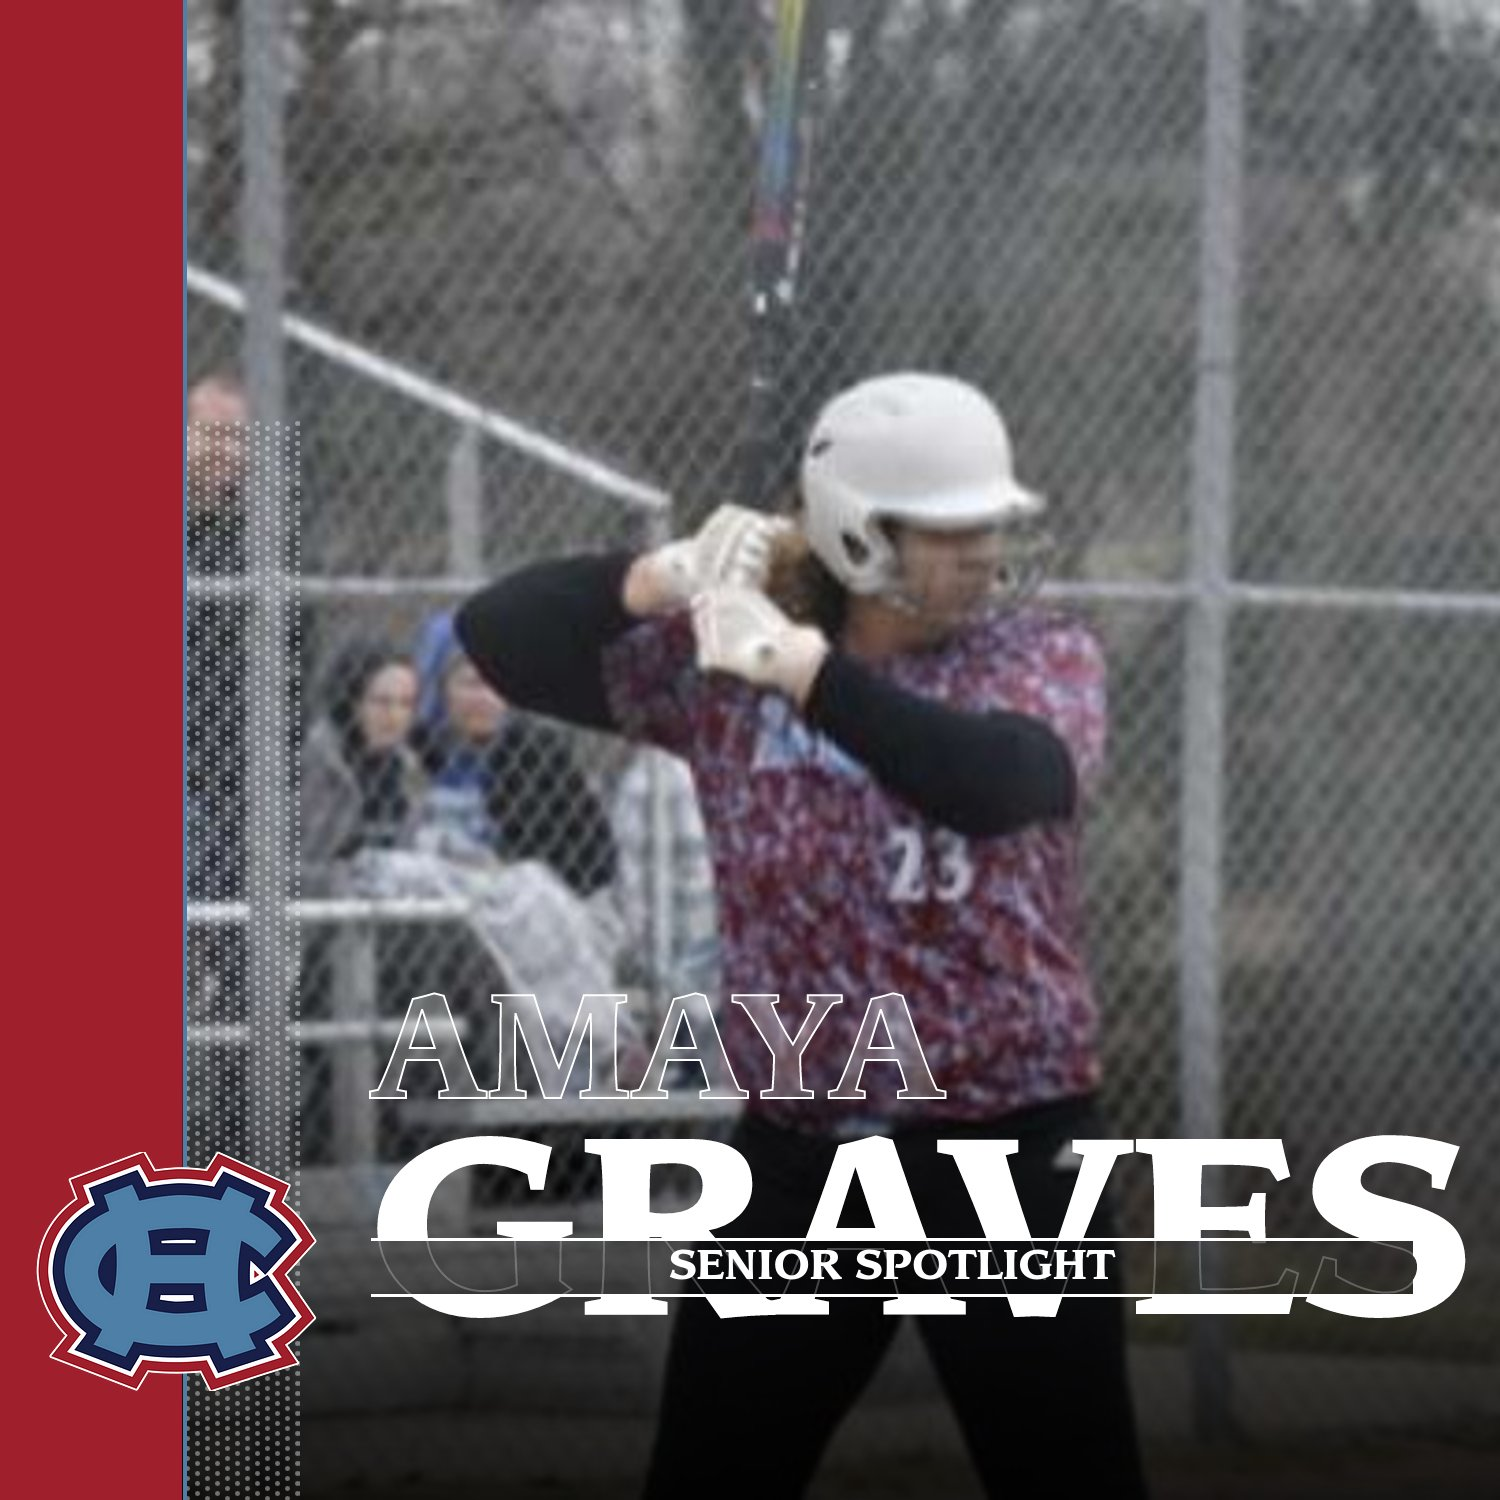 Senior spotlight: Amaya Graves